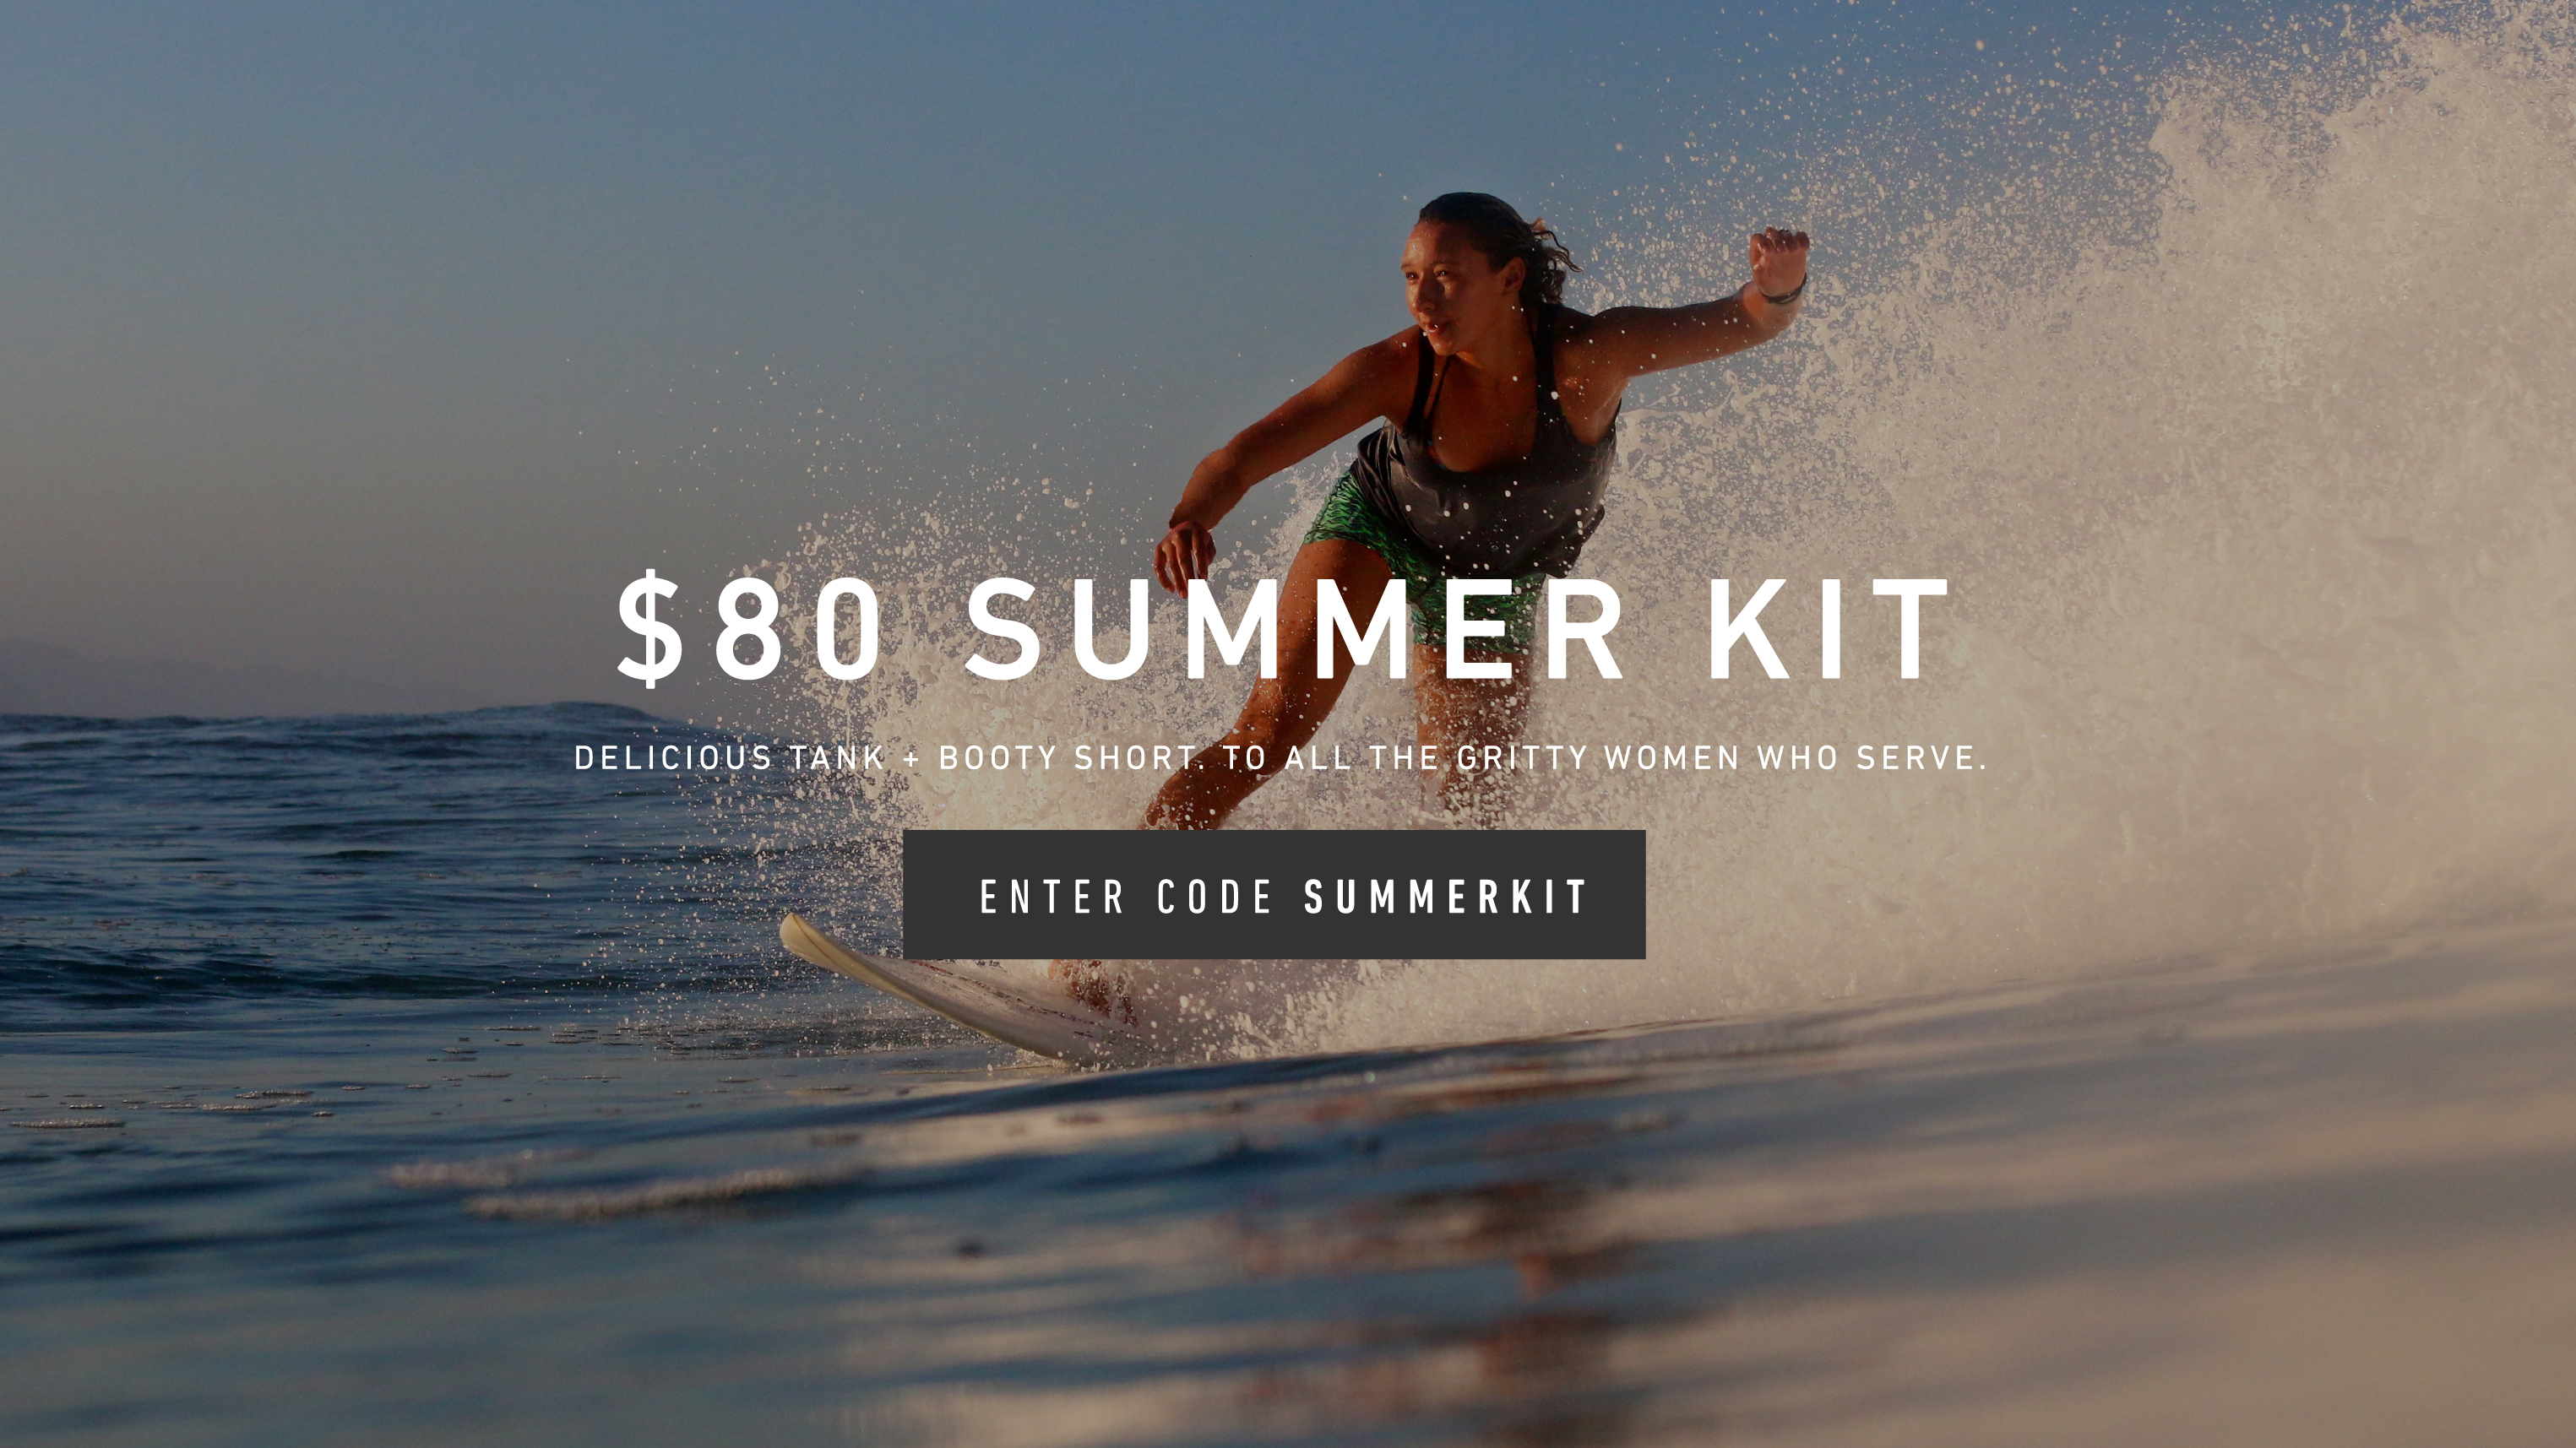 $80 Summer Kit. Delicious Kit + Booty Shorts. To All the Gritty Women Who Serve. Enter Code SUMMERKIT